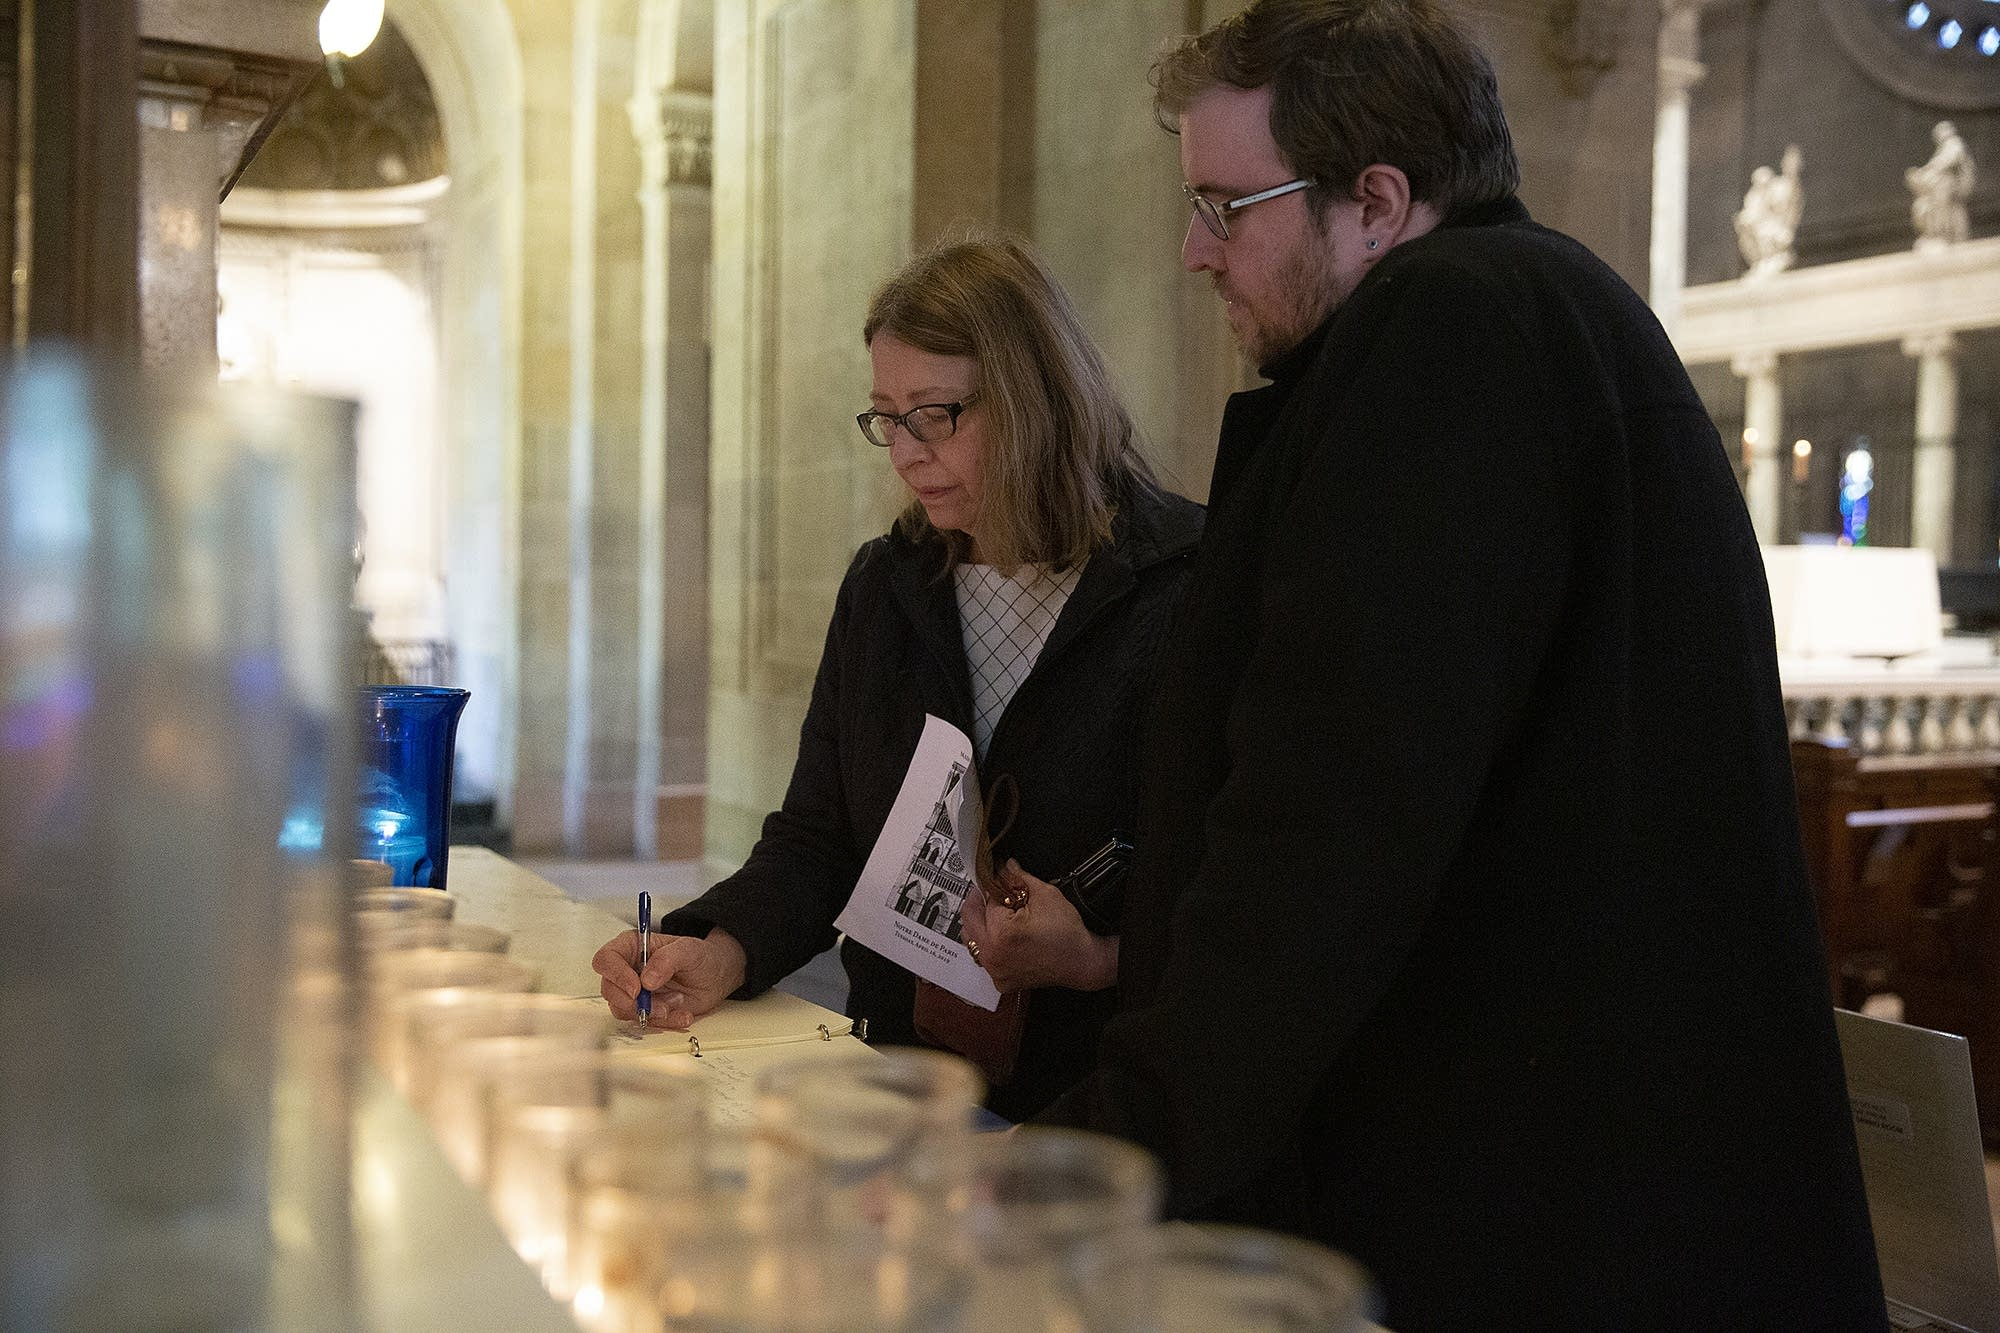 Cheryl and Alex Miller leave a message in support of Notre Dame.